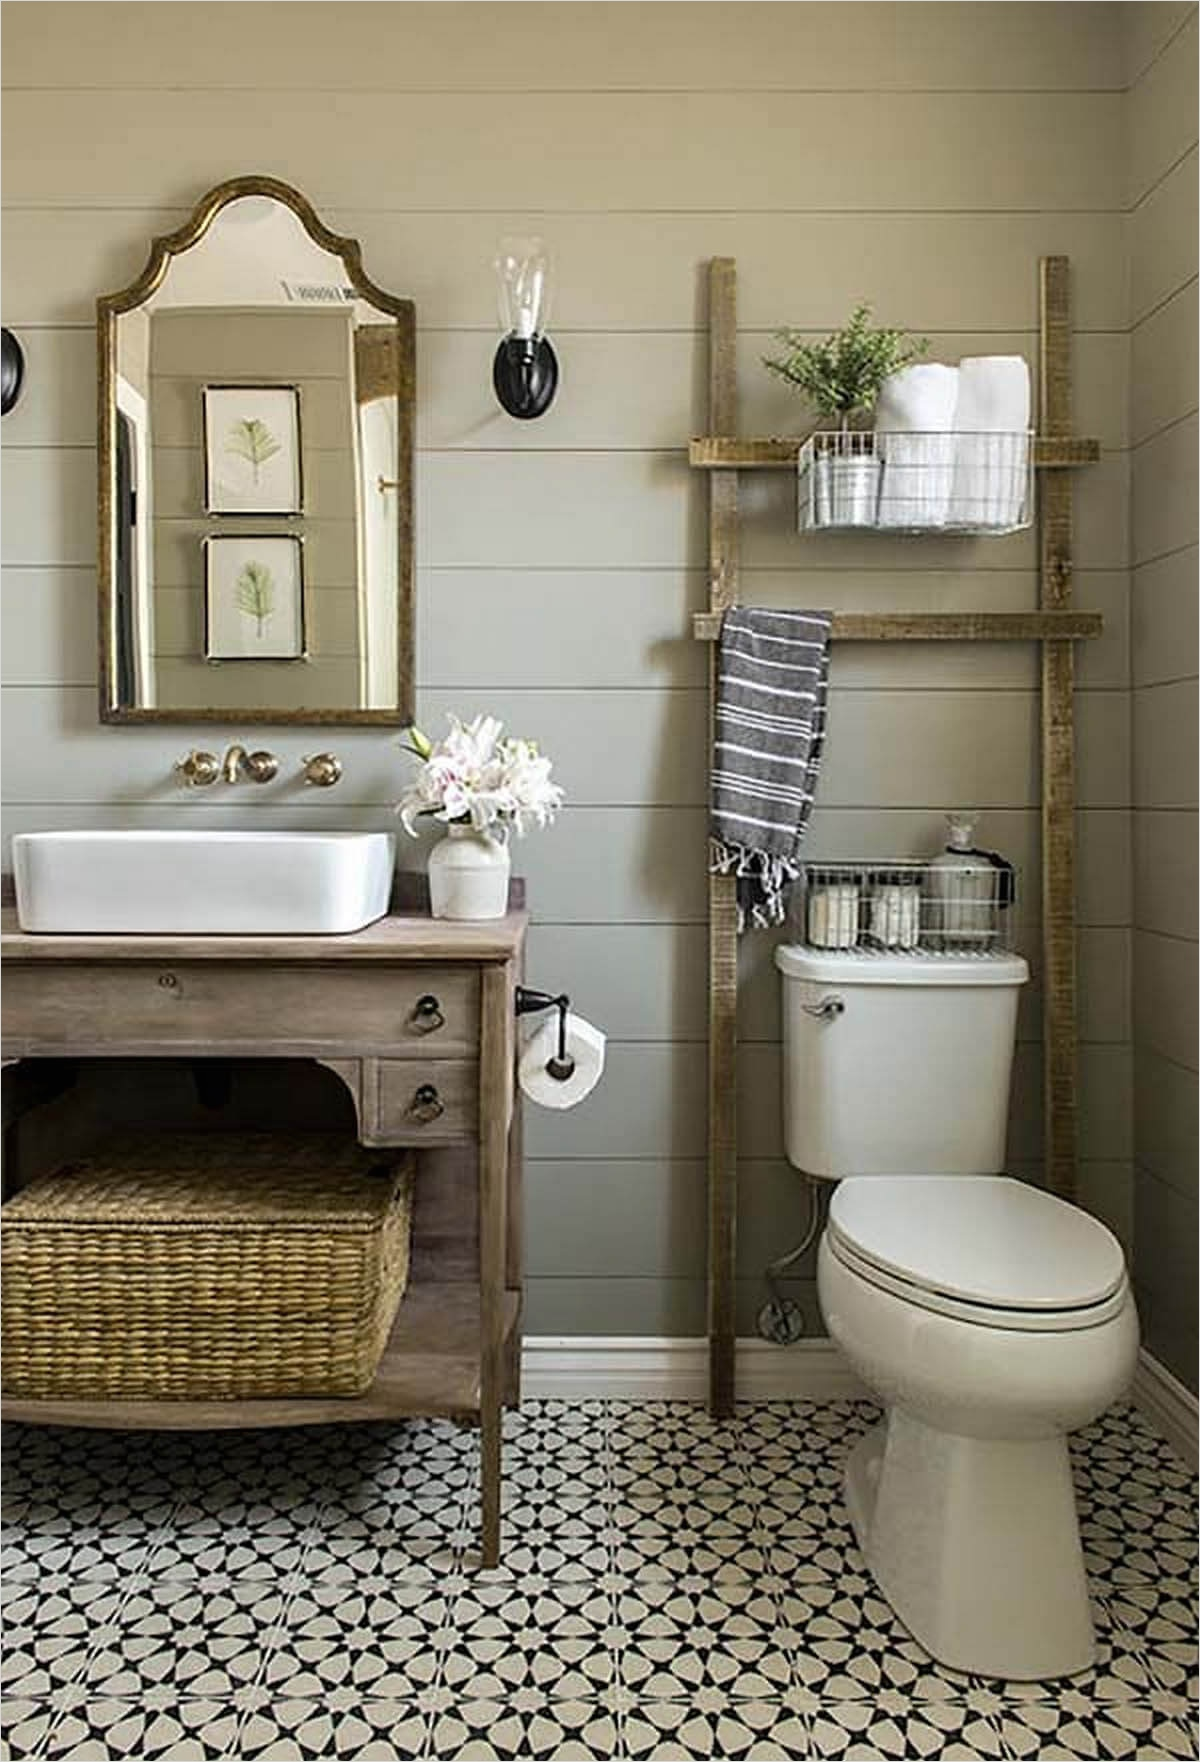 41 Beautiful Farmhouse Bathroom Accessories Ideas 83 36 Best Farmhouse Bathroom Design and Decor Ideas for 2017 7